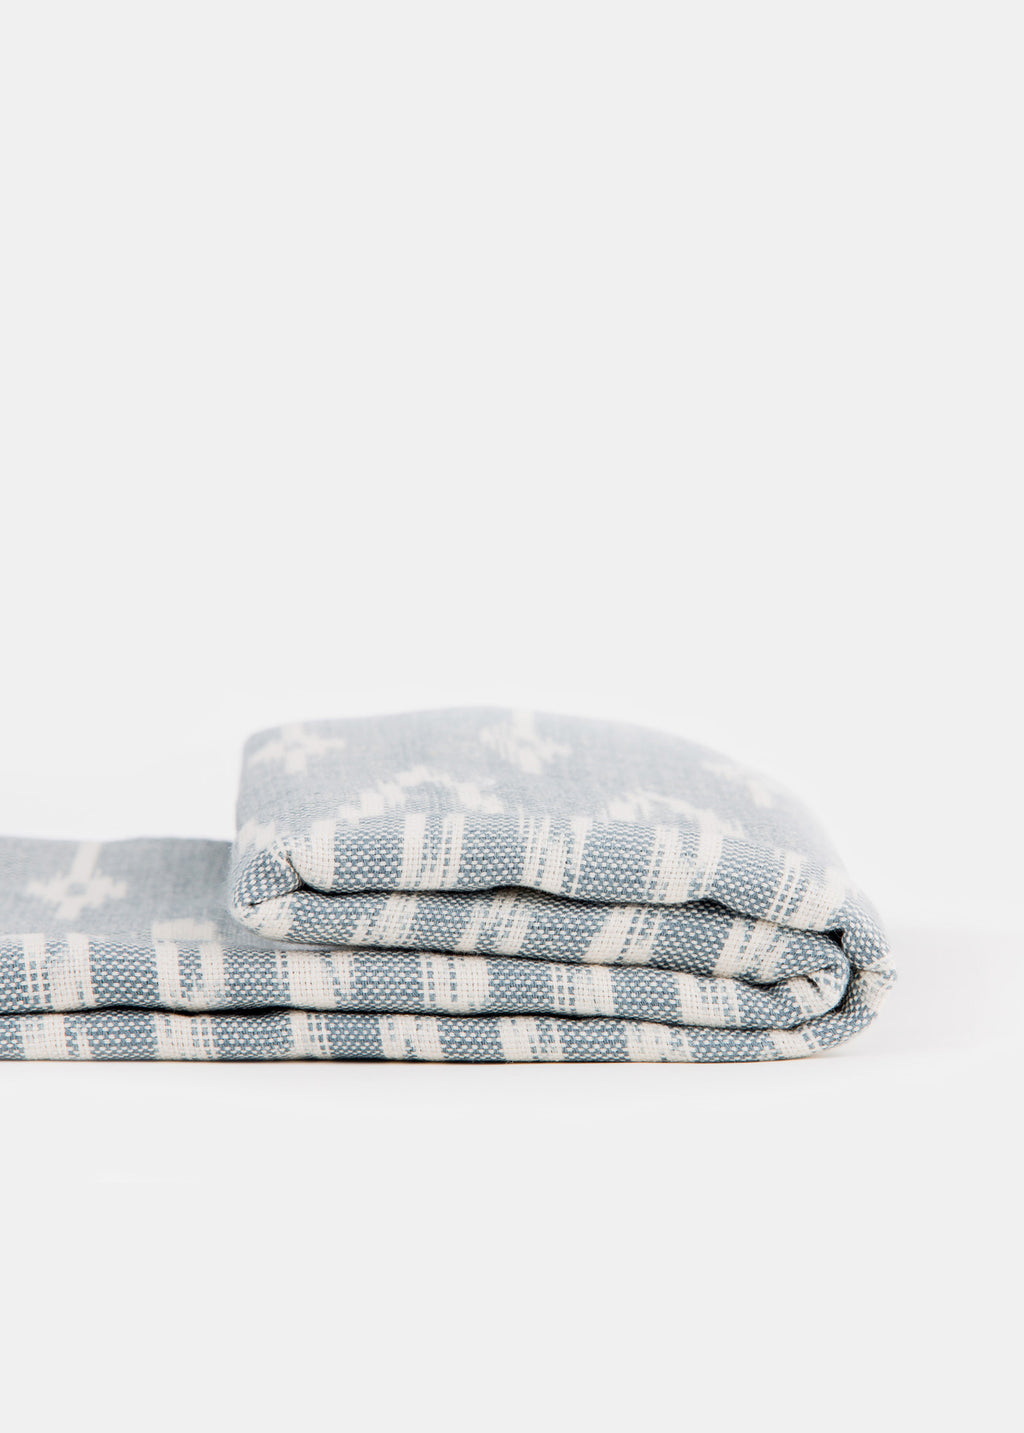 Grey Blue Handwoven Throw - YUYU Sustainable Home Goods